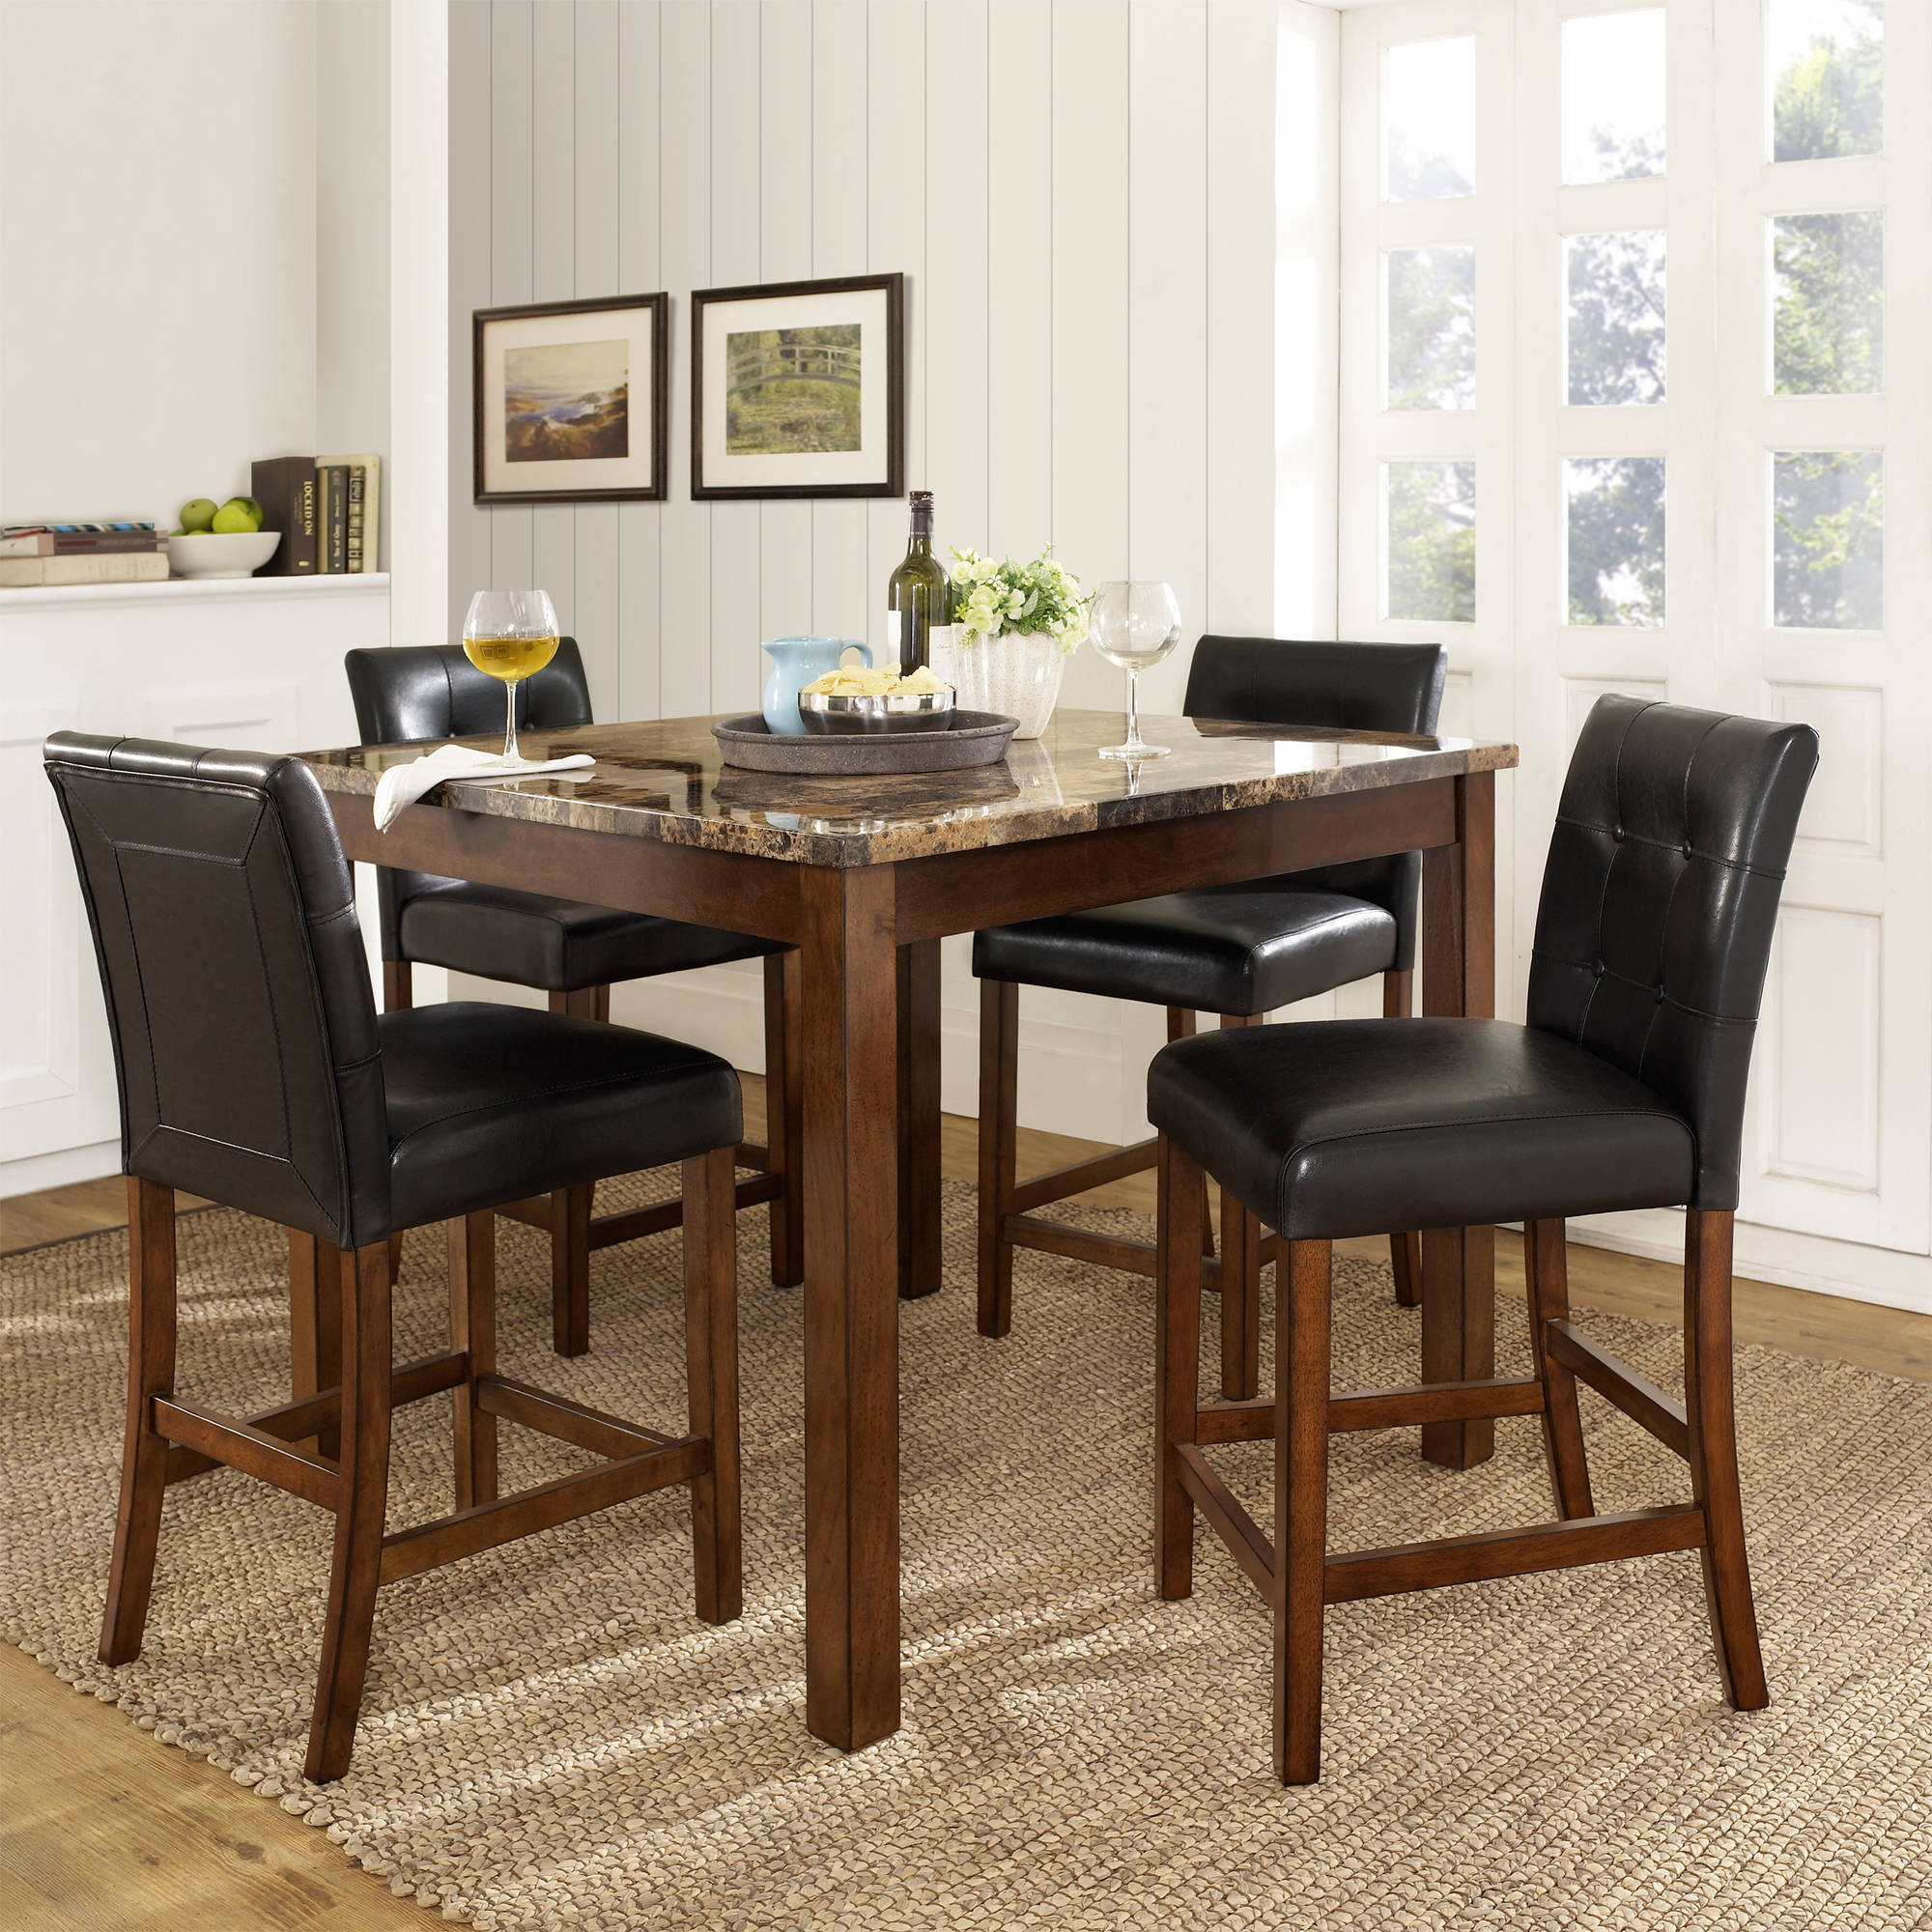 Cheap Kitchen Tables Kitchen & Dining Furniture  Walmart